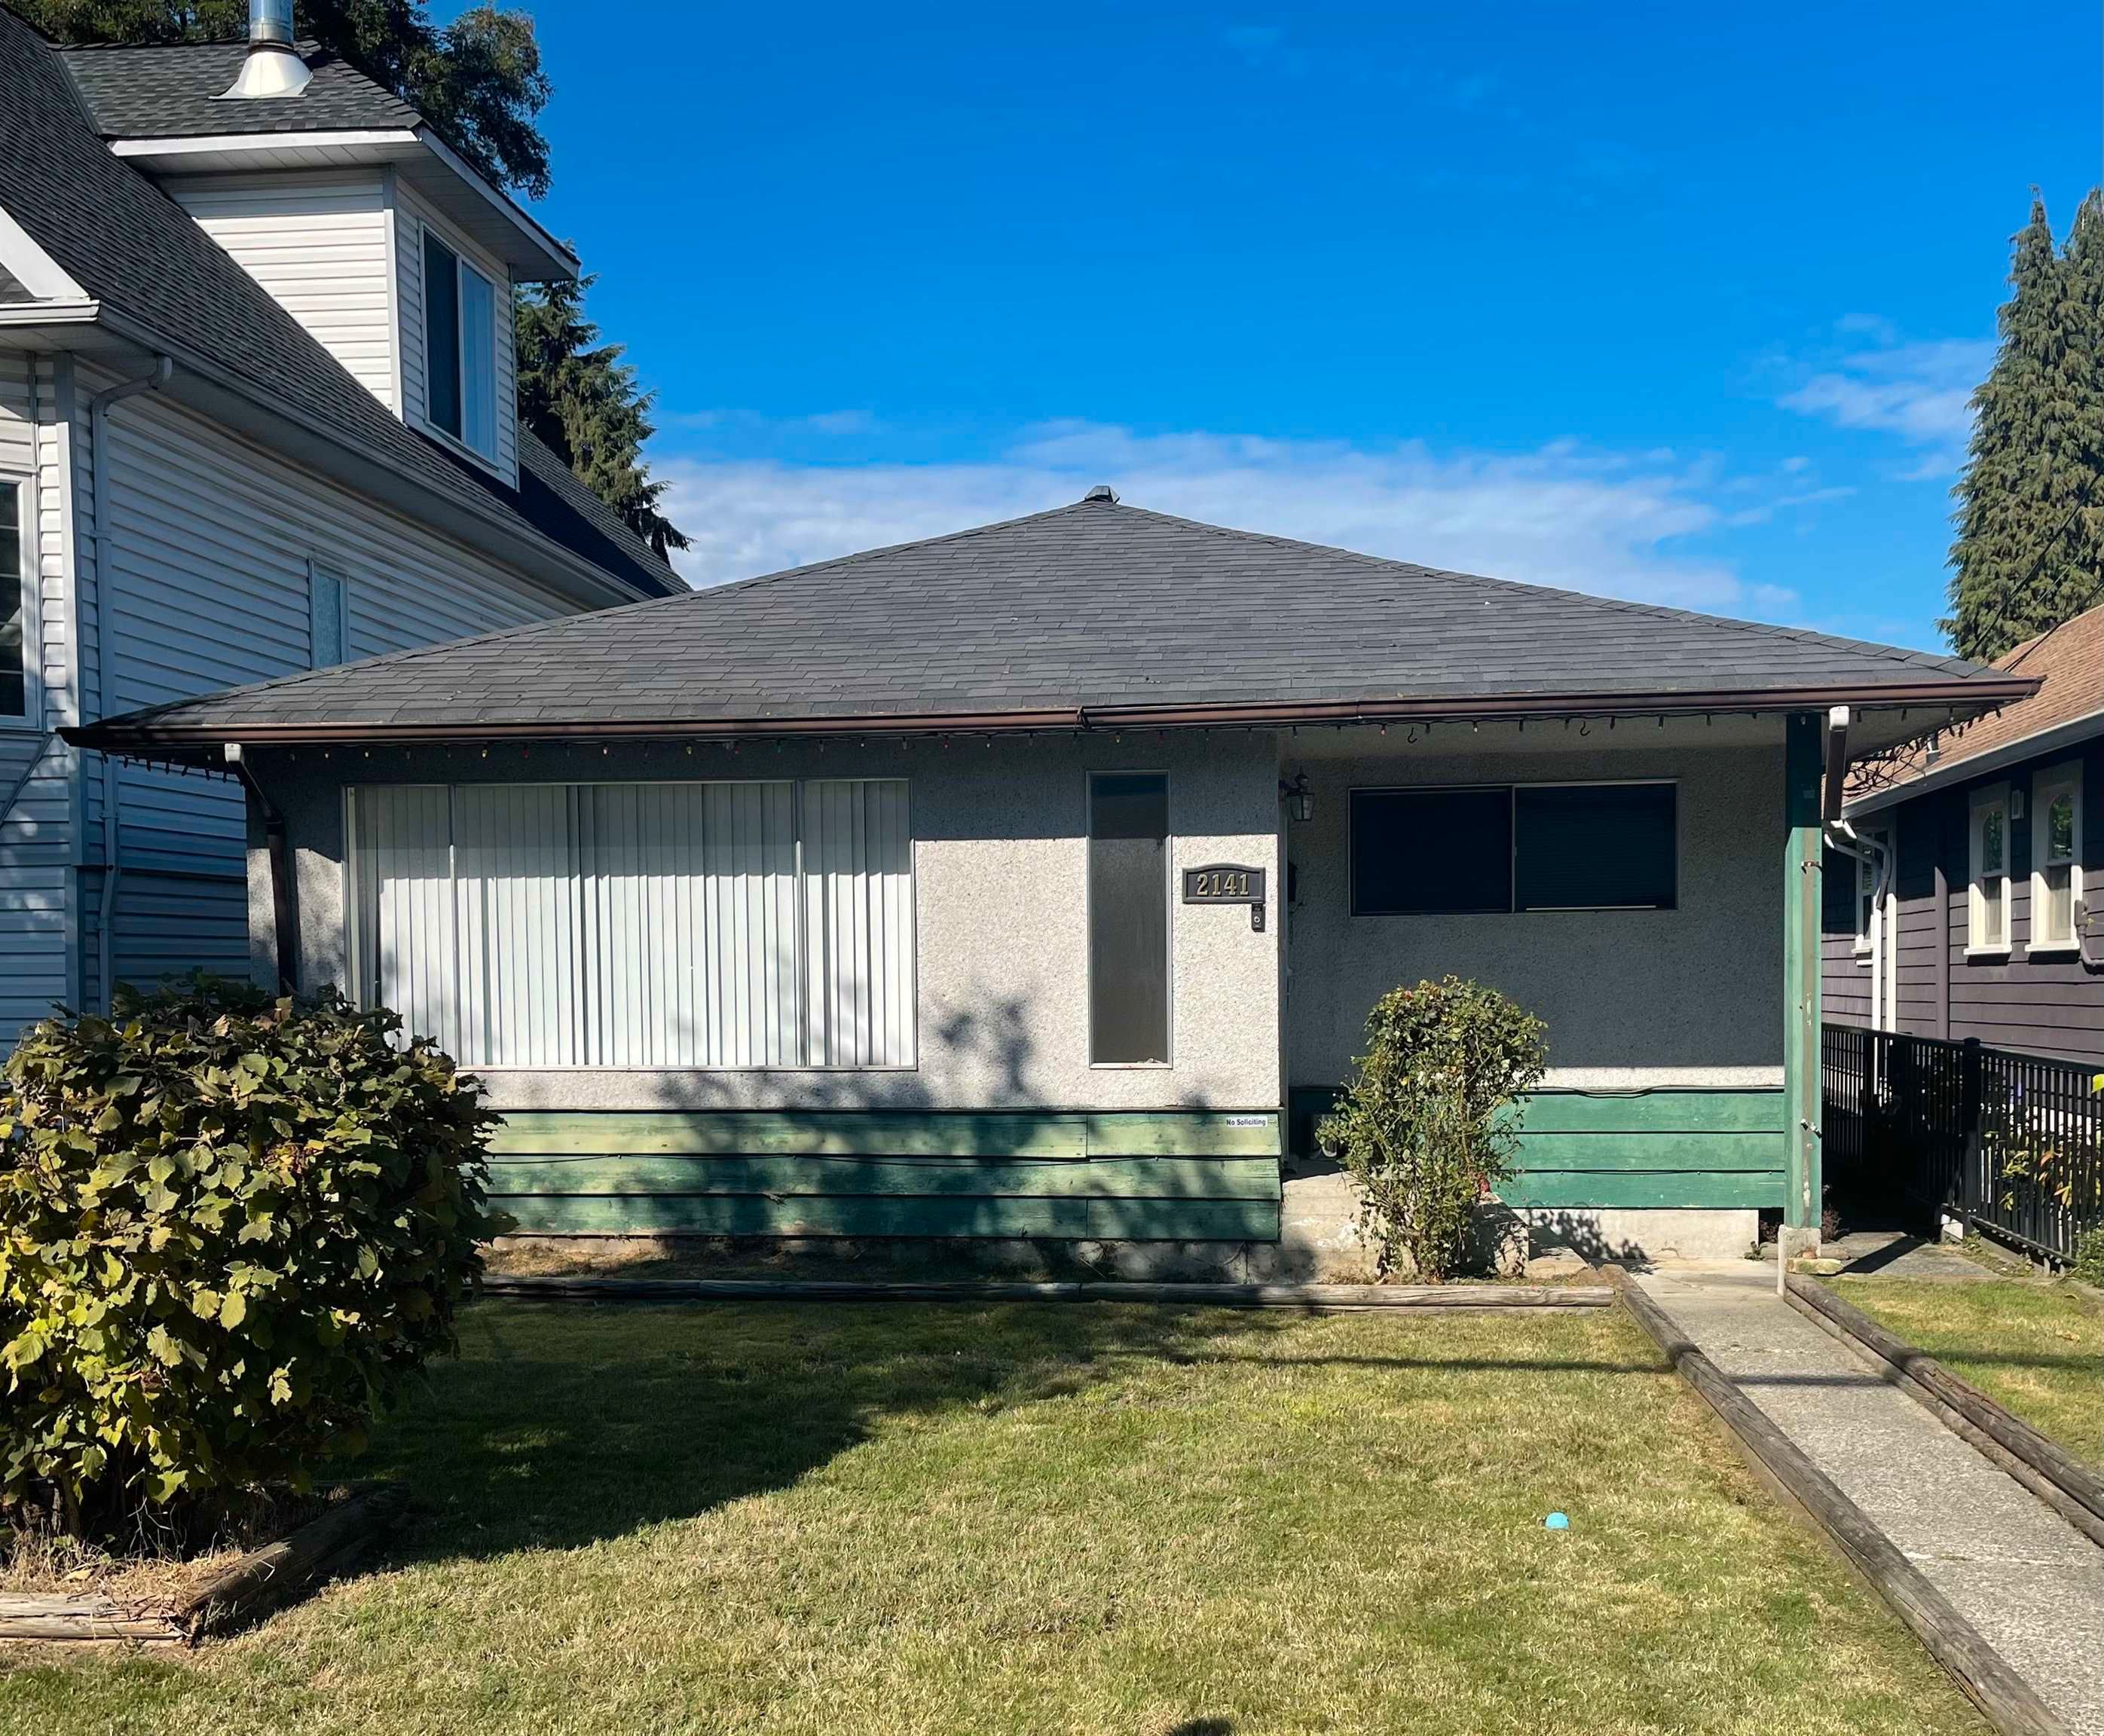 Main Photo: 2141 FRASER Avenue in Port Coquitlam: Glenwood PQ House for sale : MLS®# R2622047